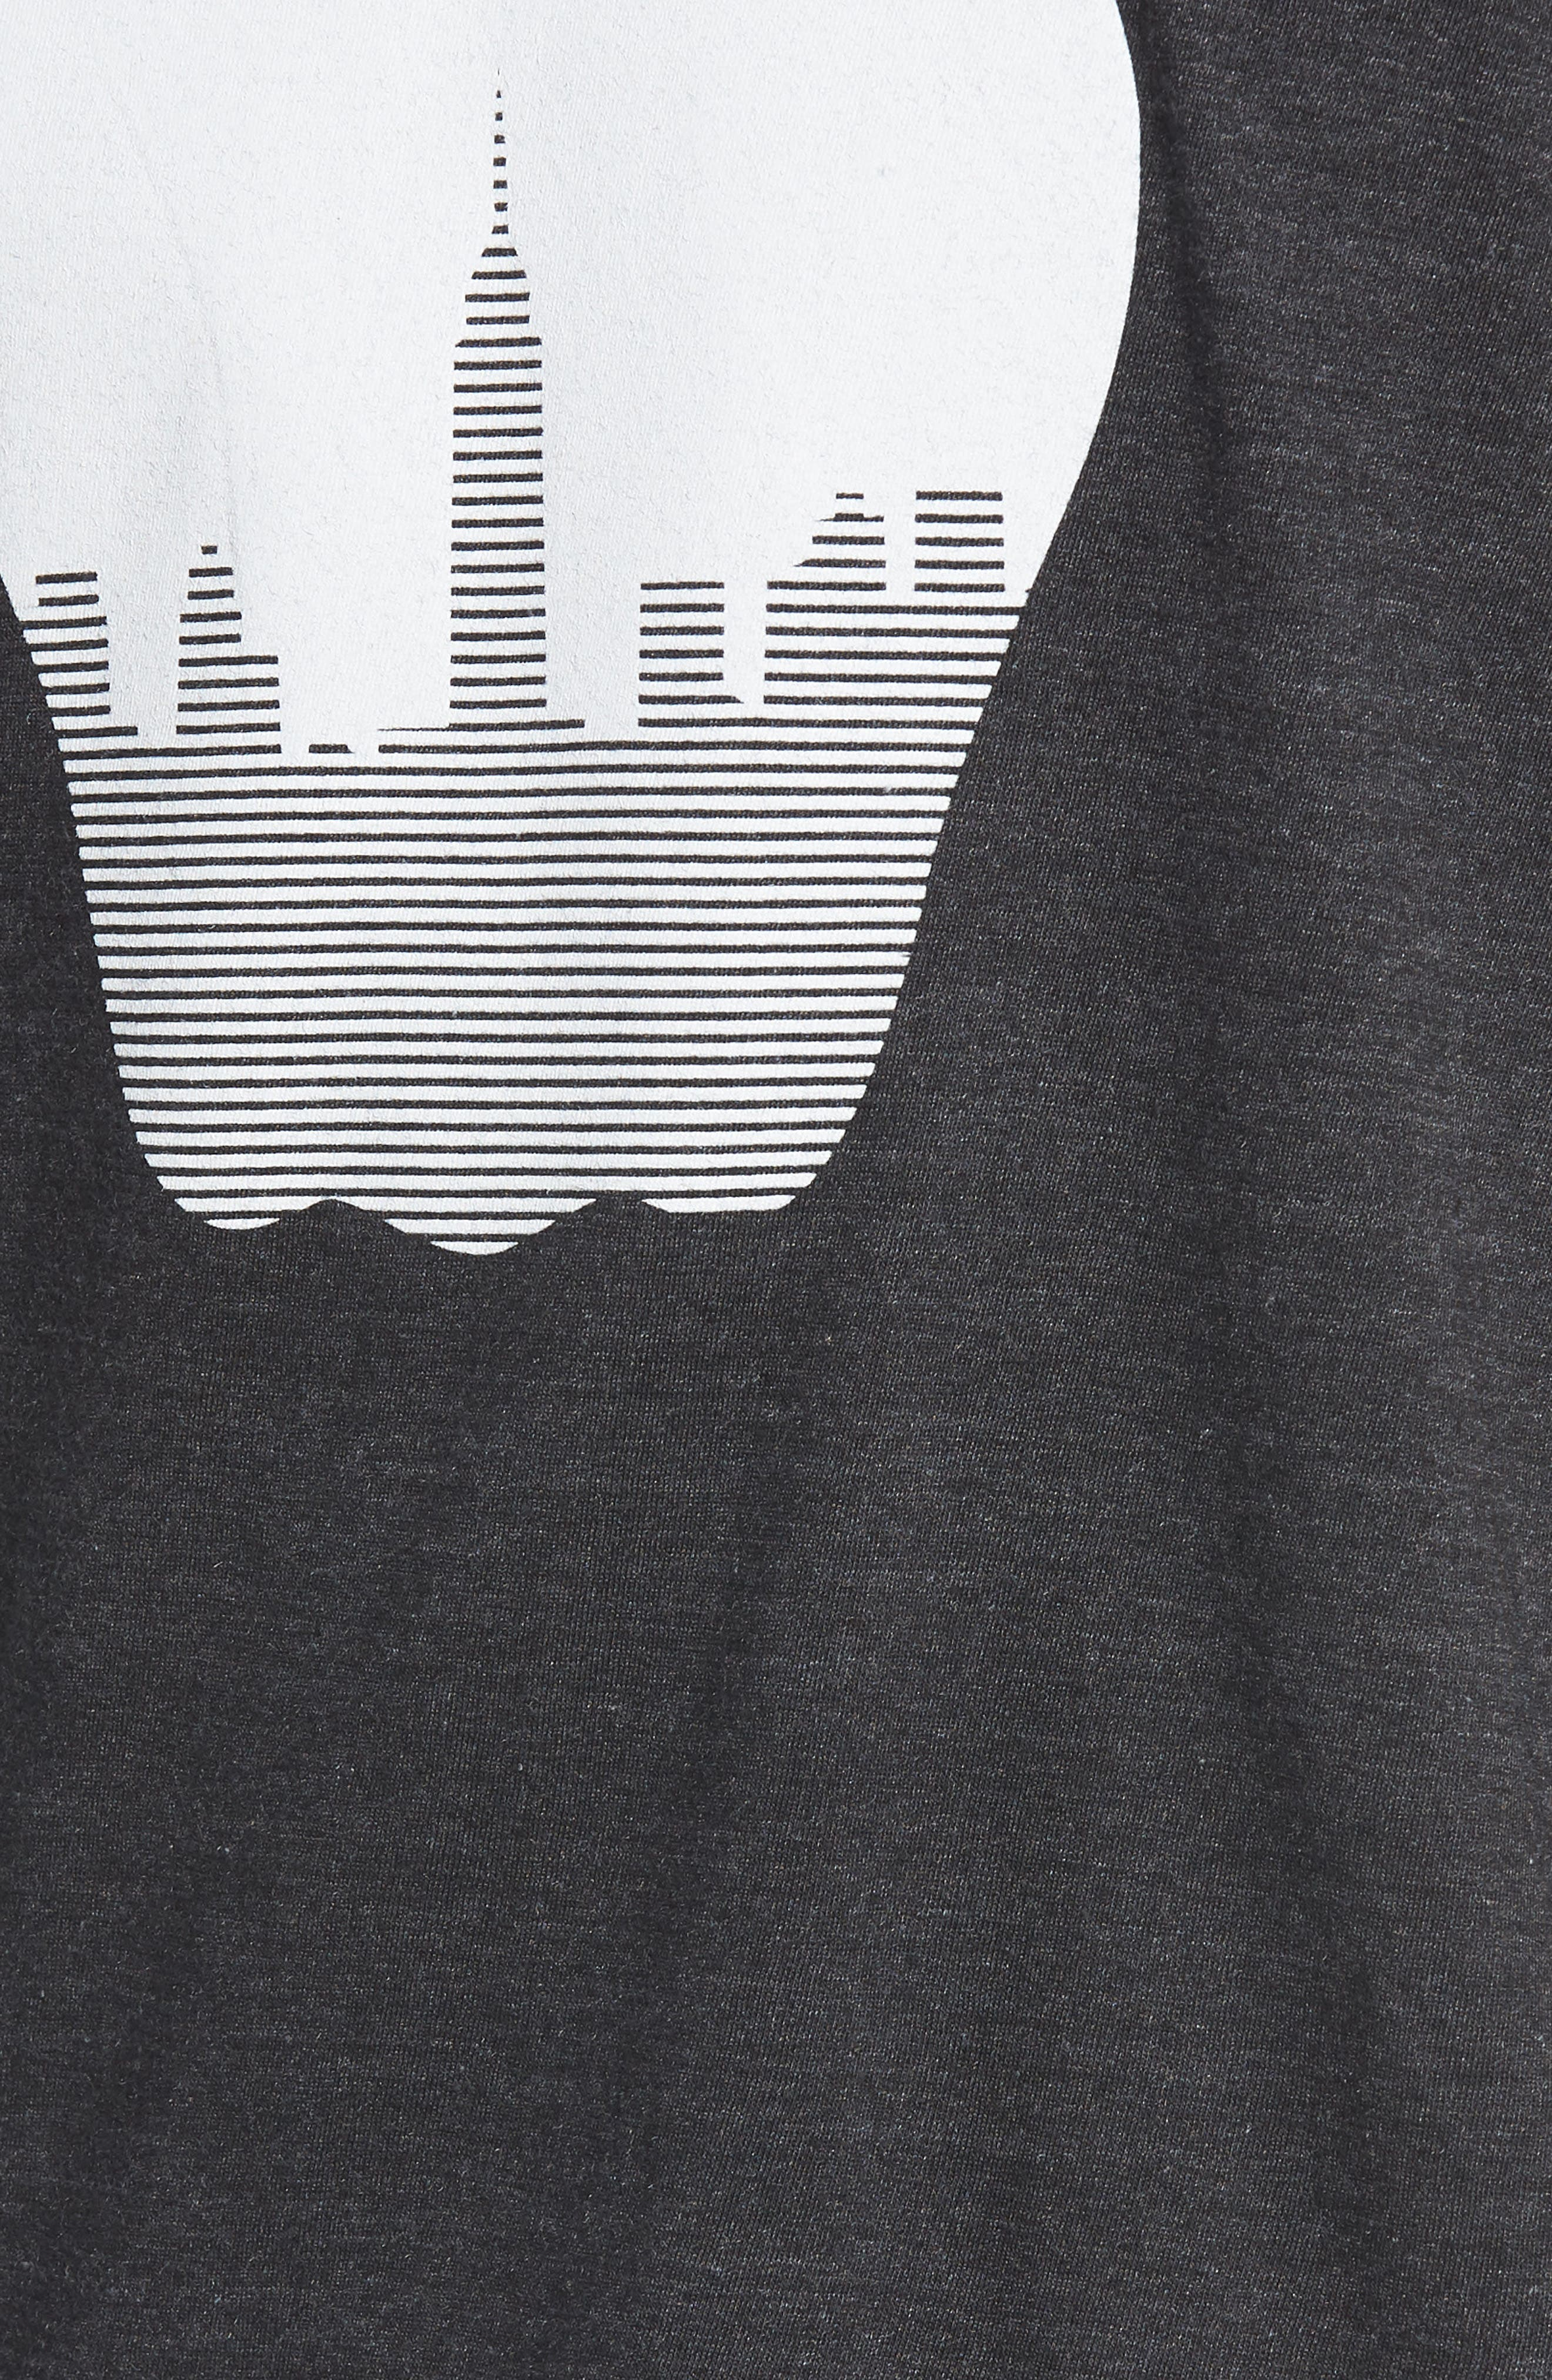 NY Apple Graphic T-Shirt,                             Alternate thumbnail 5, color,                             002